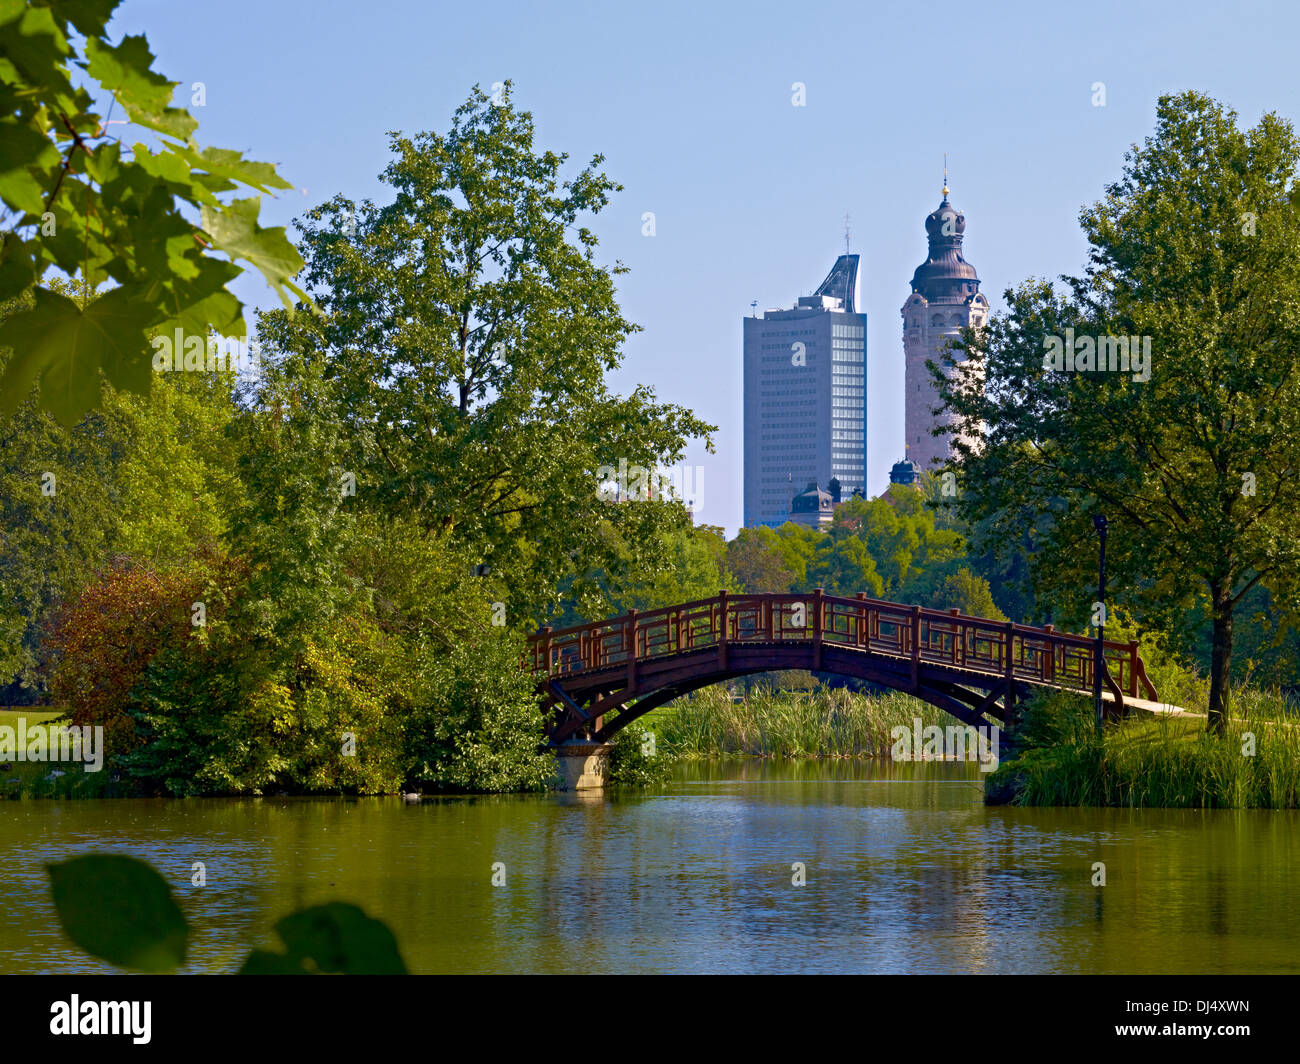 johanna park overlooking downtown to uni and town hall in leipzig stock photo royalty free. Black Bedroom Furniture Sets. Home Design Ideas